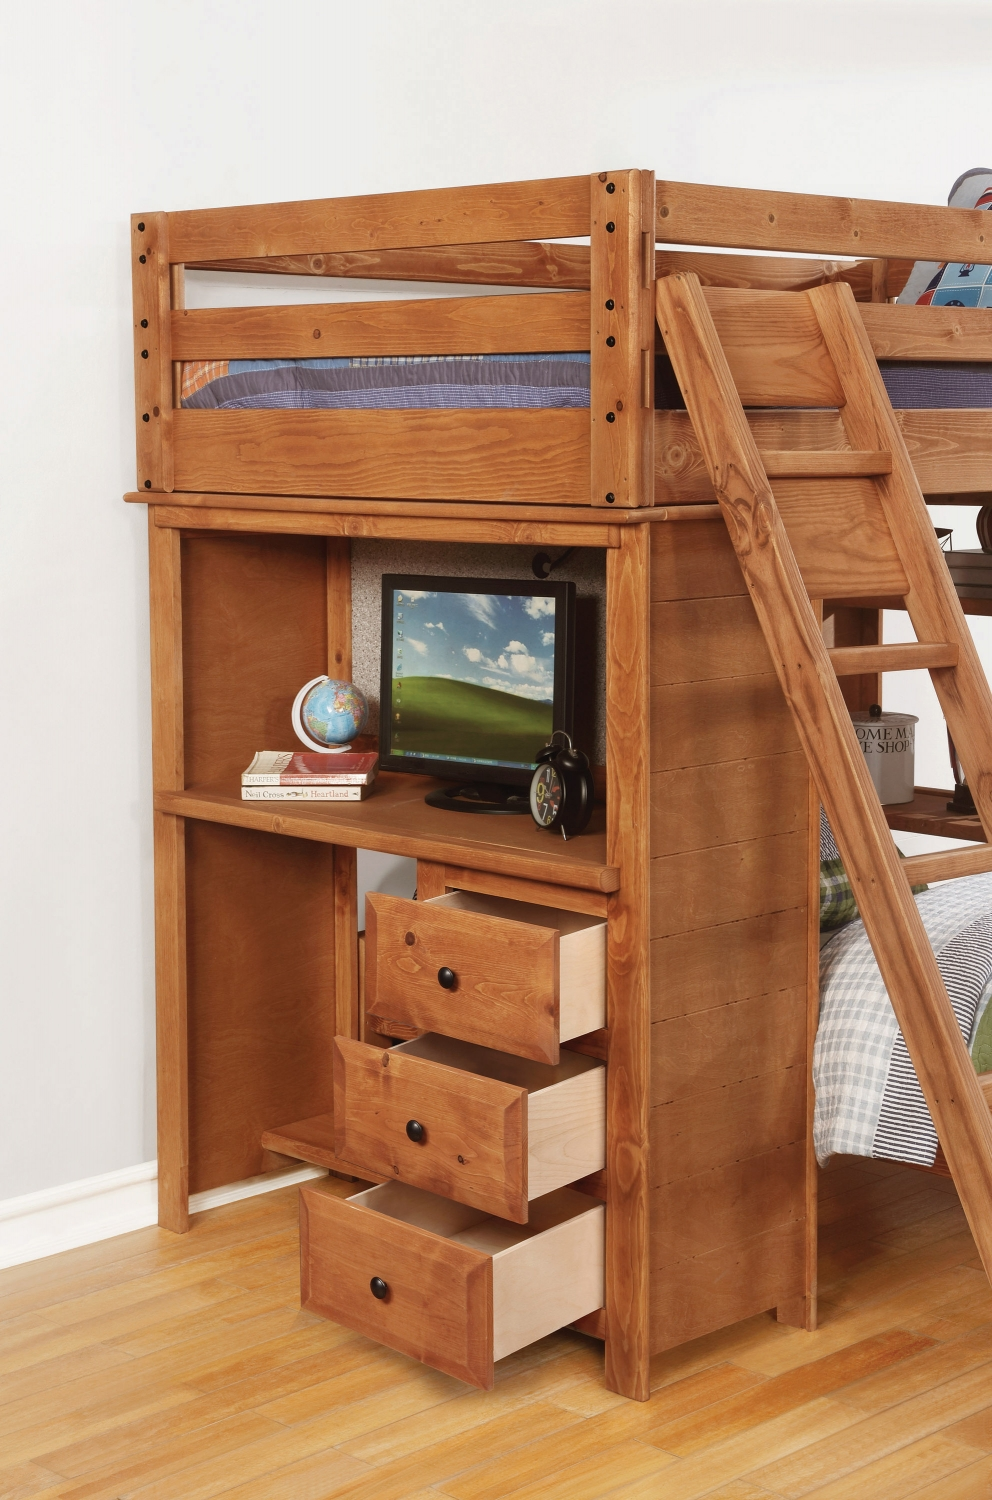 Charming Bunk Bed with Desk and Drawers On